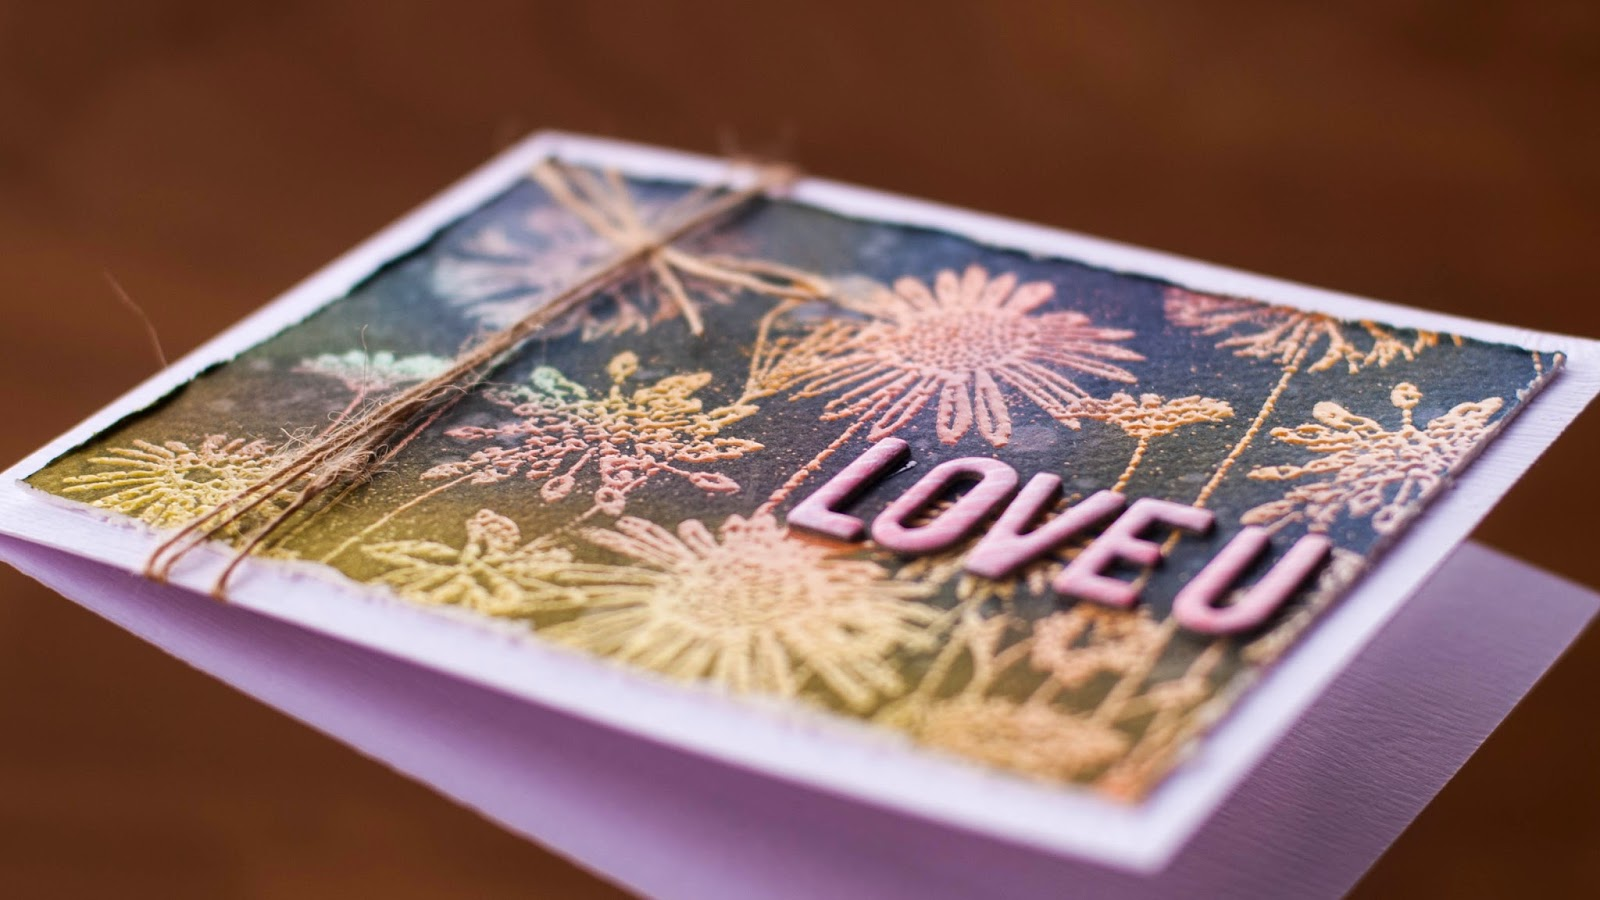 emboss resist with solid stamps - valentine card #4 - side view